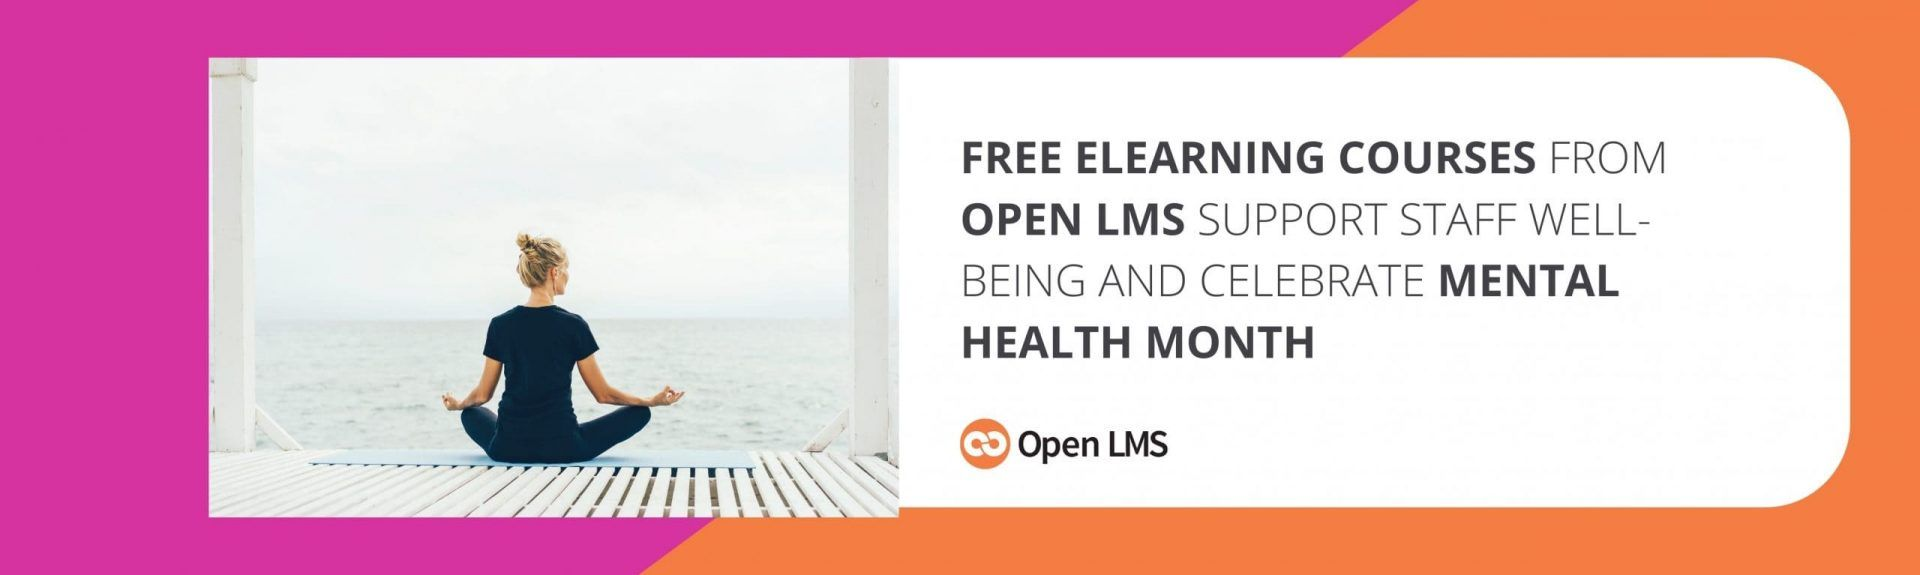 Free eLearning Courses From Open LMS Support Staff Well-Being and Celebrate Mental Health Month